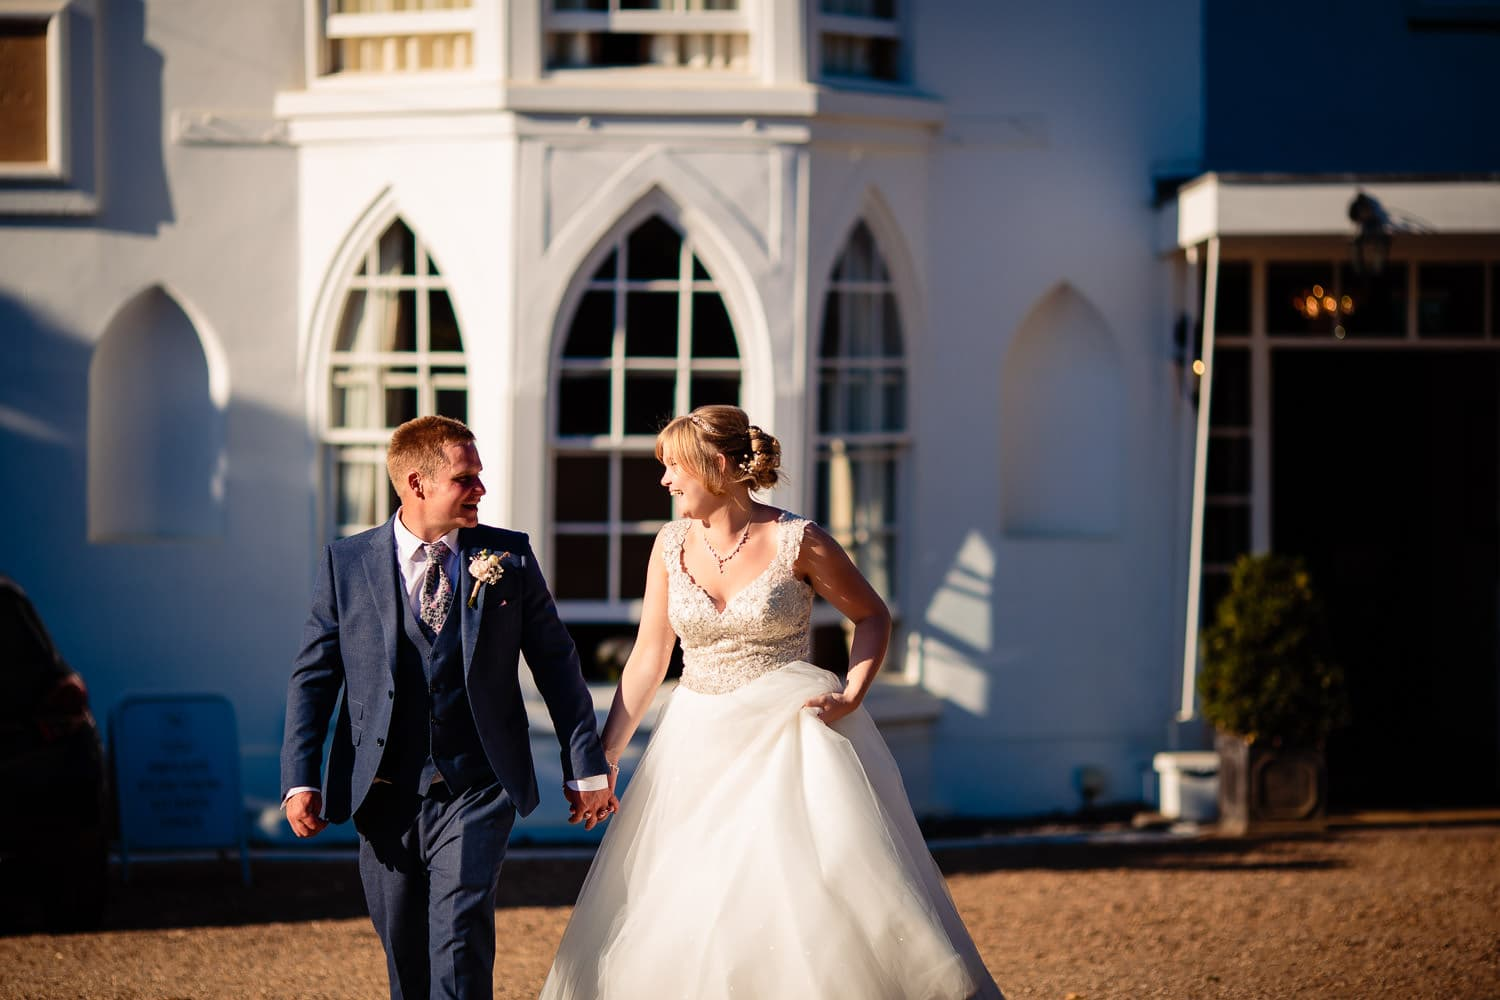 Warwick House Wedding Photography captures bride and groom walking in the sunshine and smiling to each other